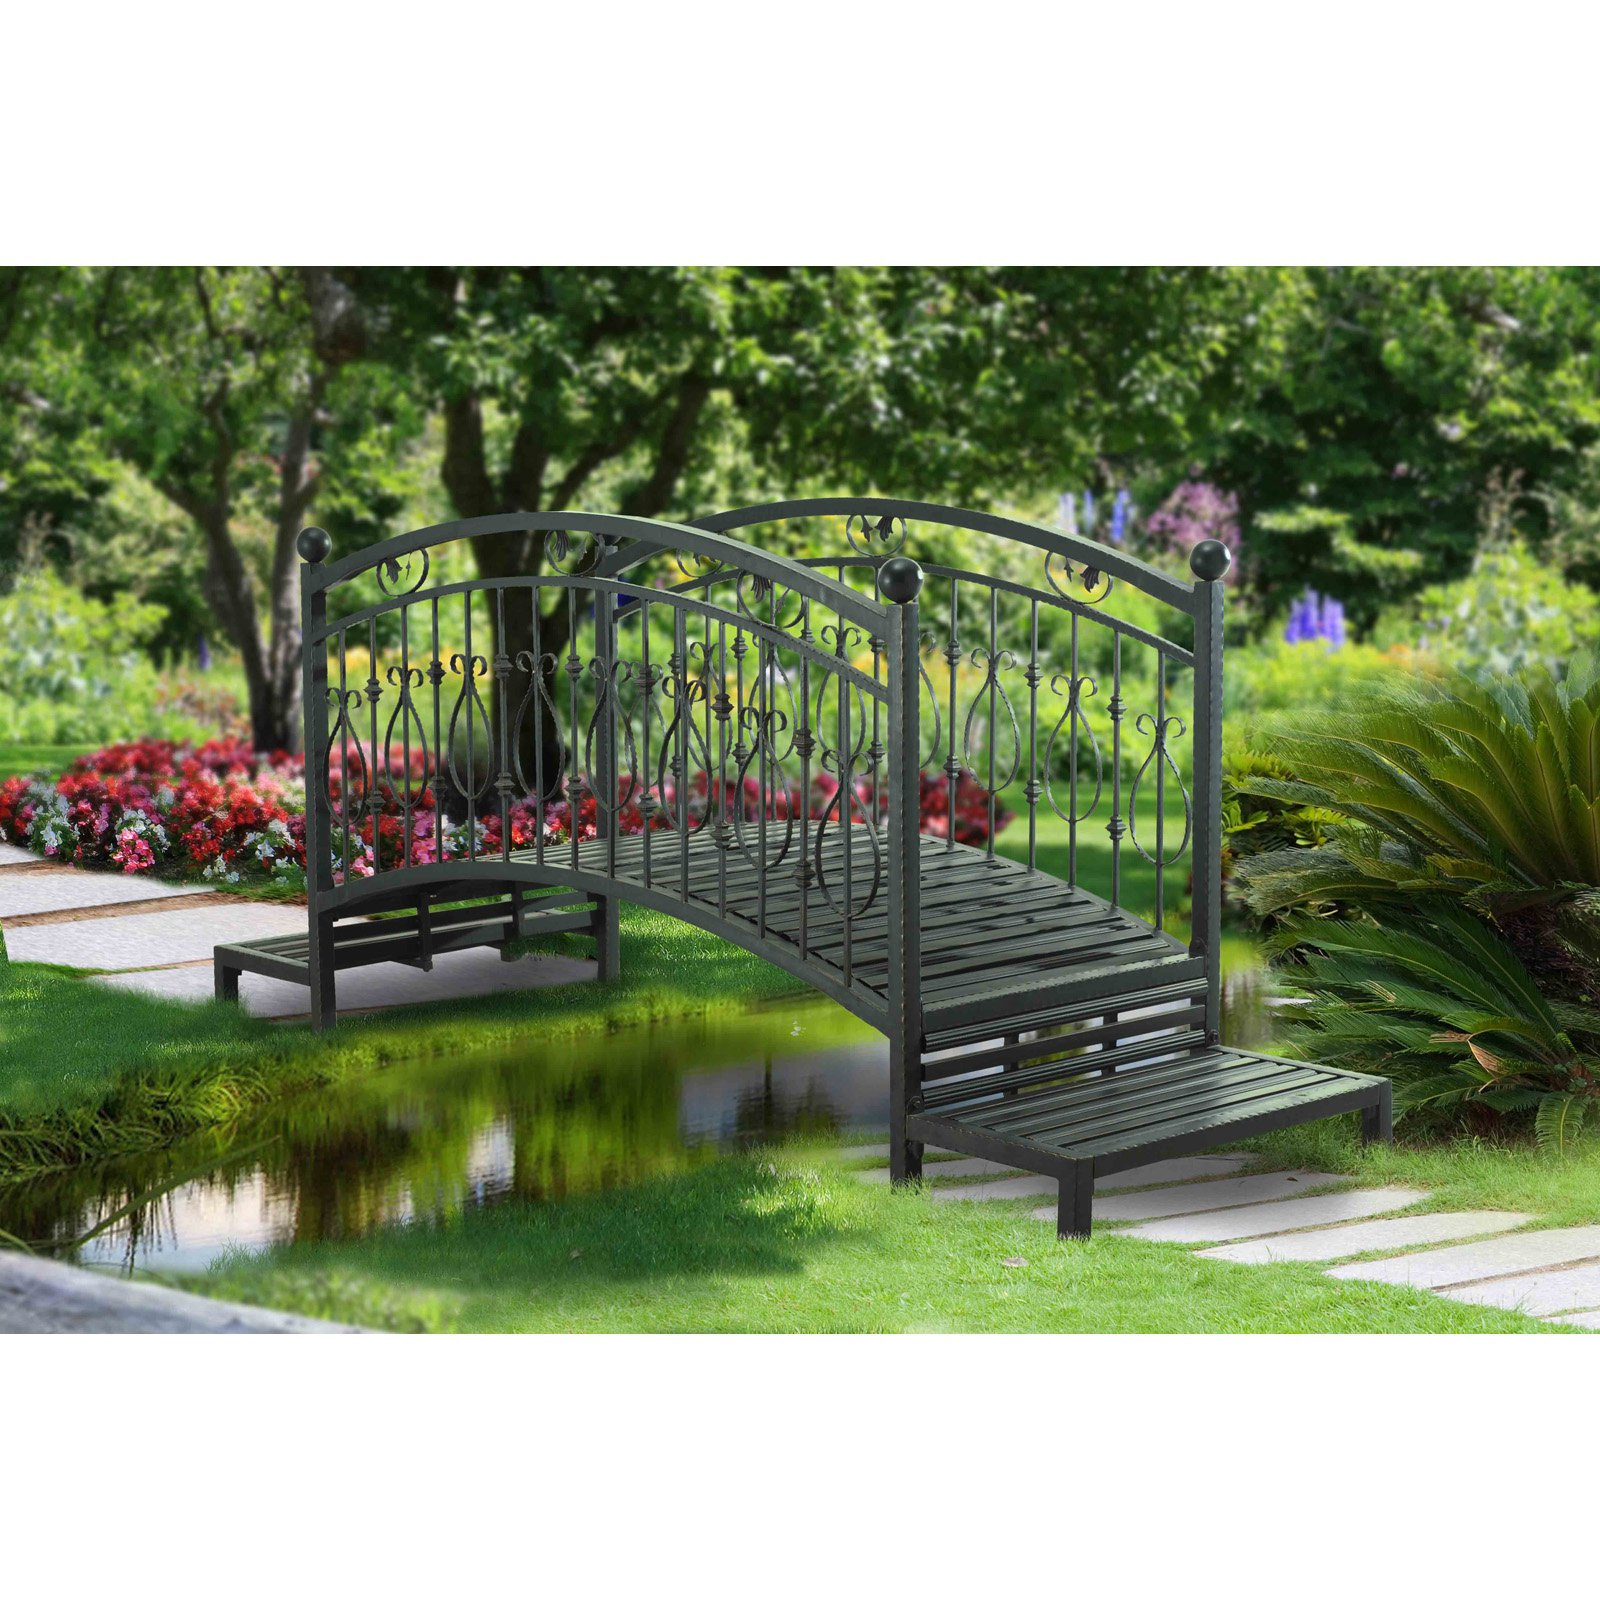 "Sunjoy 110317001 Garden Bridge, 90"" x 32"" x 42"""